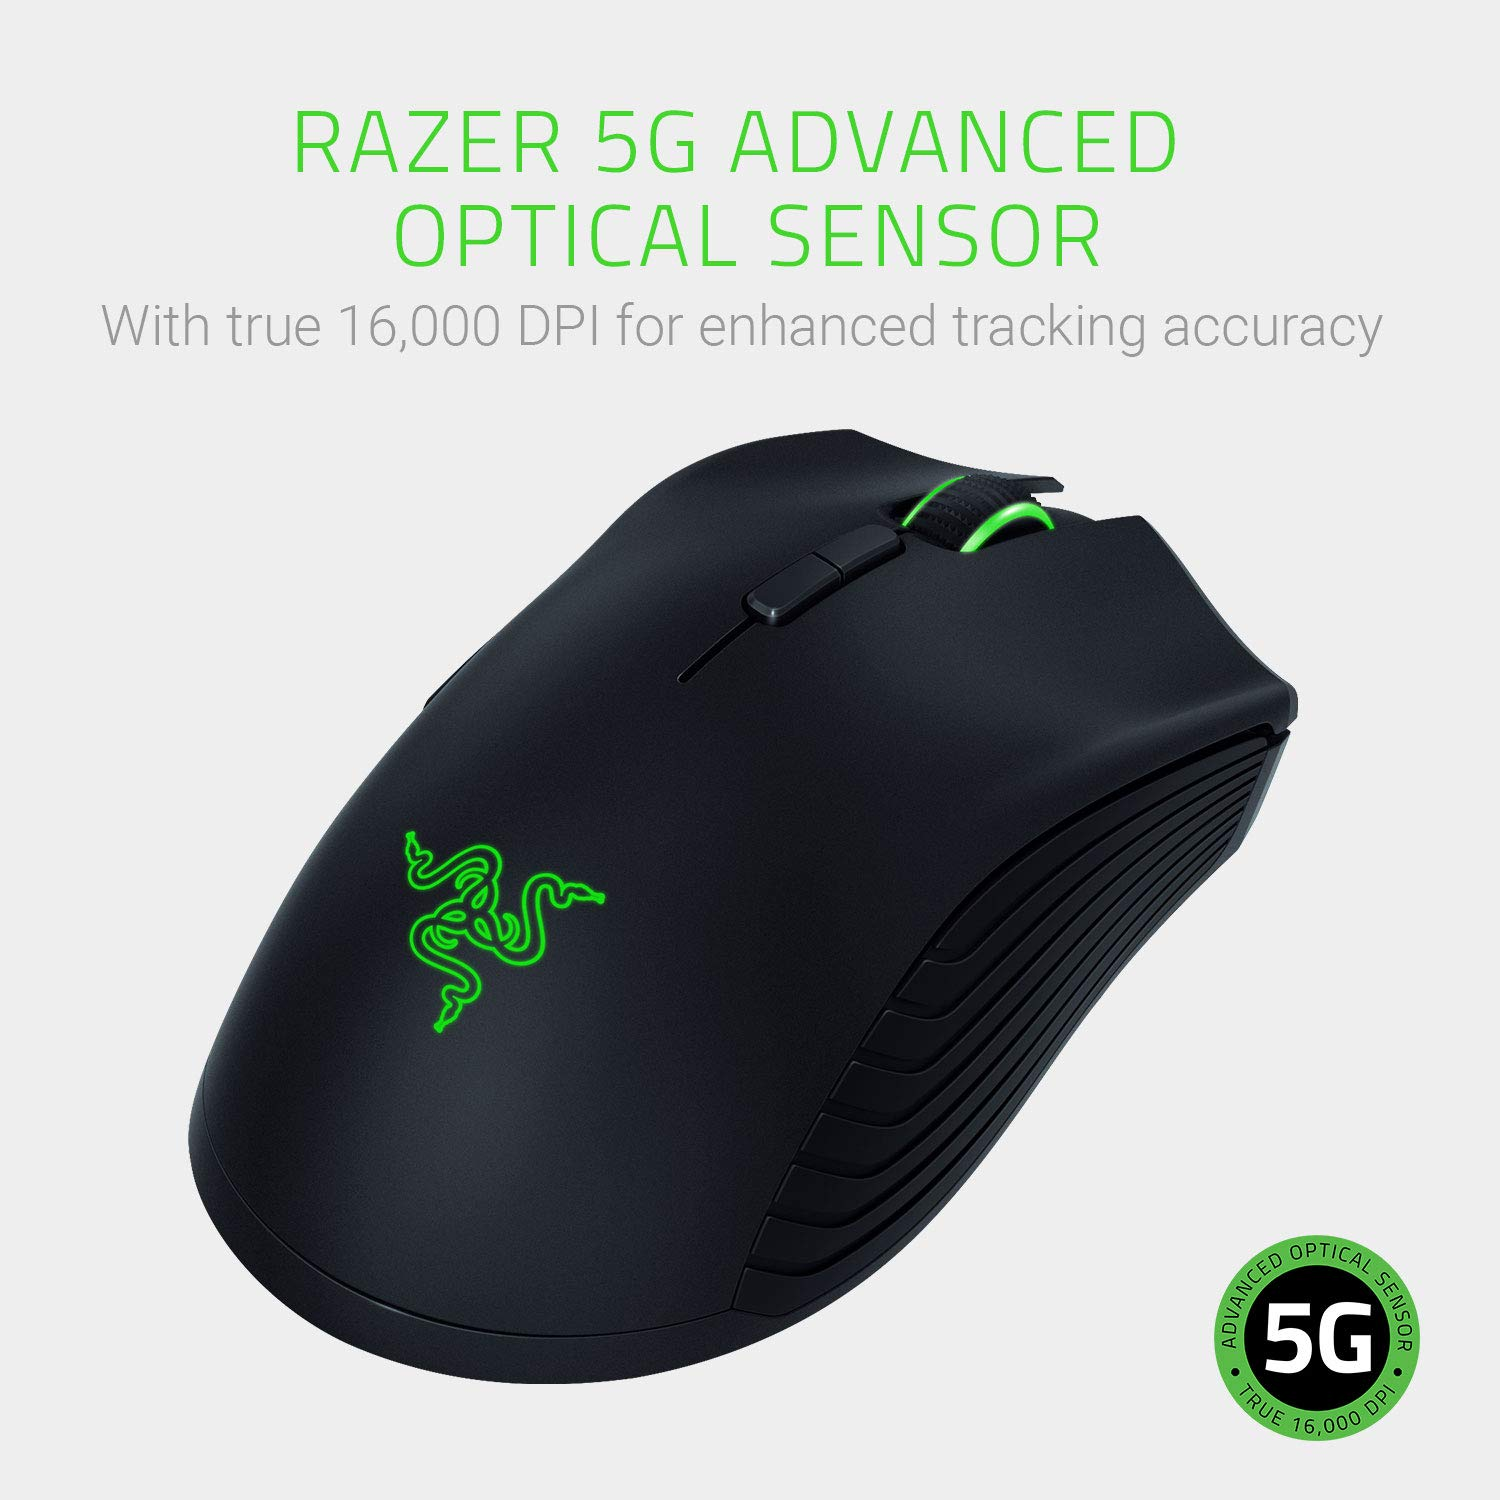 Razer Mamba Wireless Gaming Mouse: 16,000 DPI Optical Sensor - Chroma RGB Lighting - 7 Programmable Buttons - Mechanical Switches - Up to 50 Hr Battery Life by Razer (Image #3)